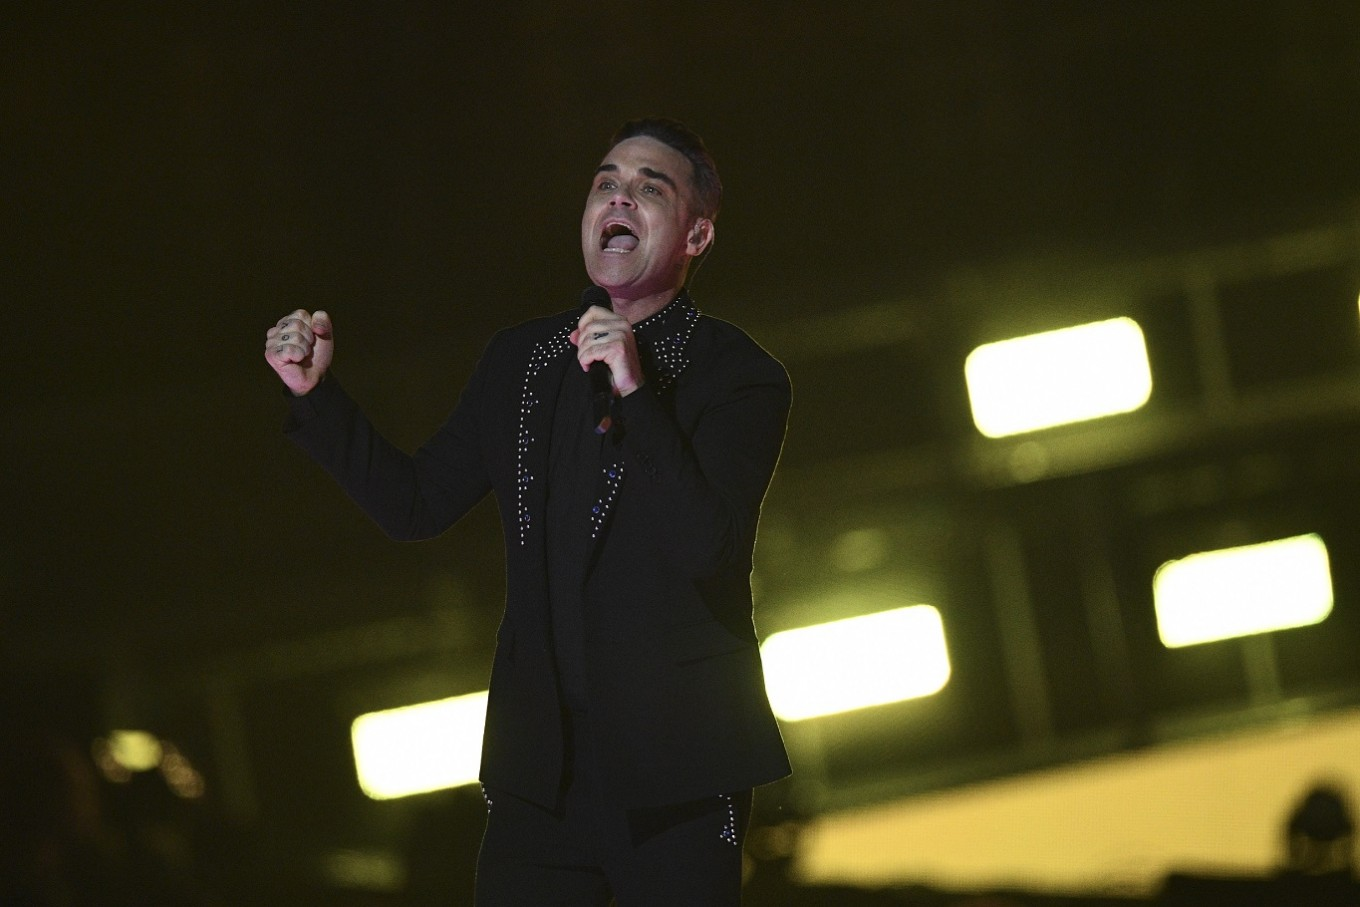 Robbie Williams to perform at World Cup opening ceremony